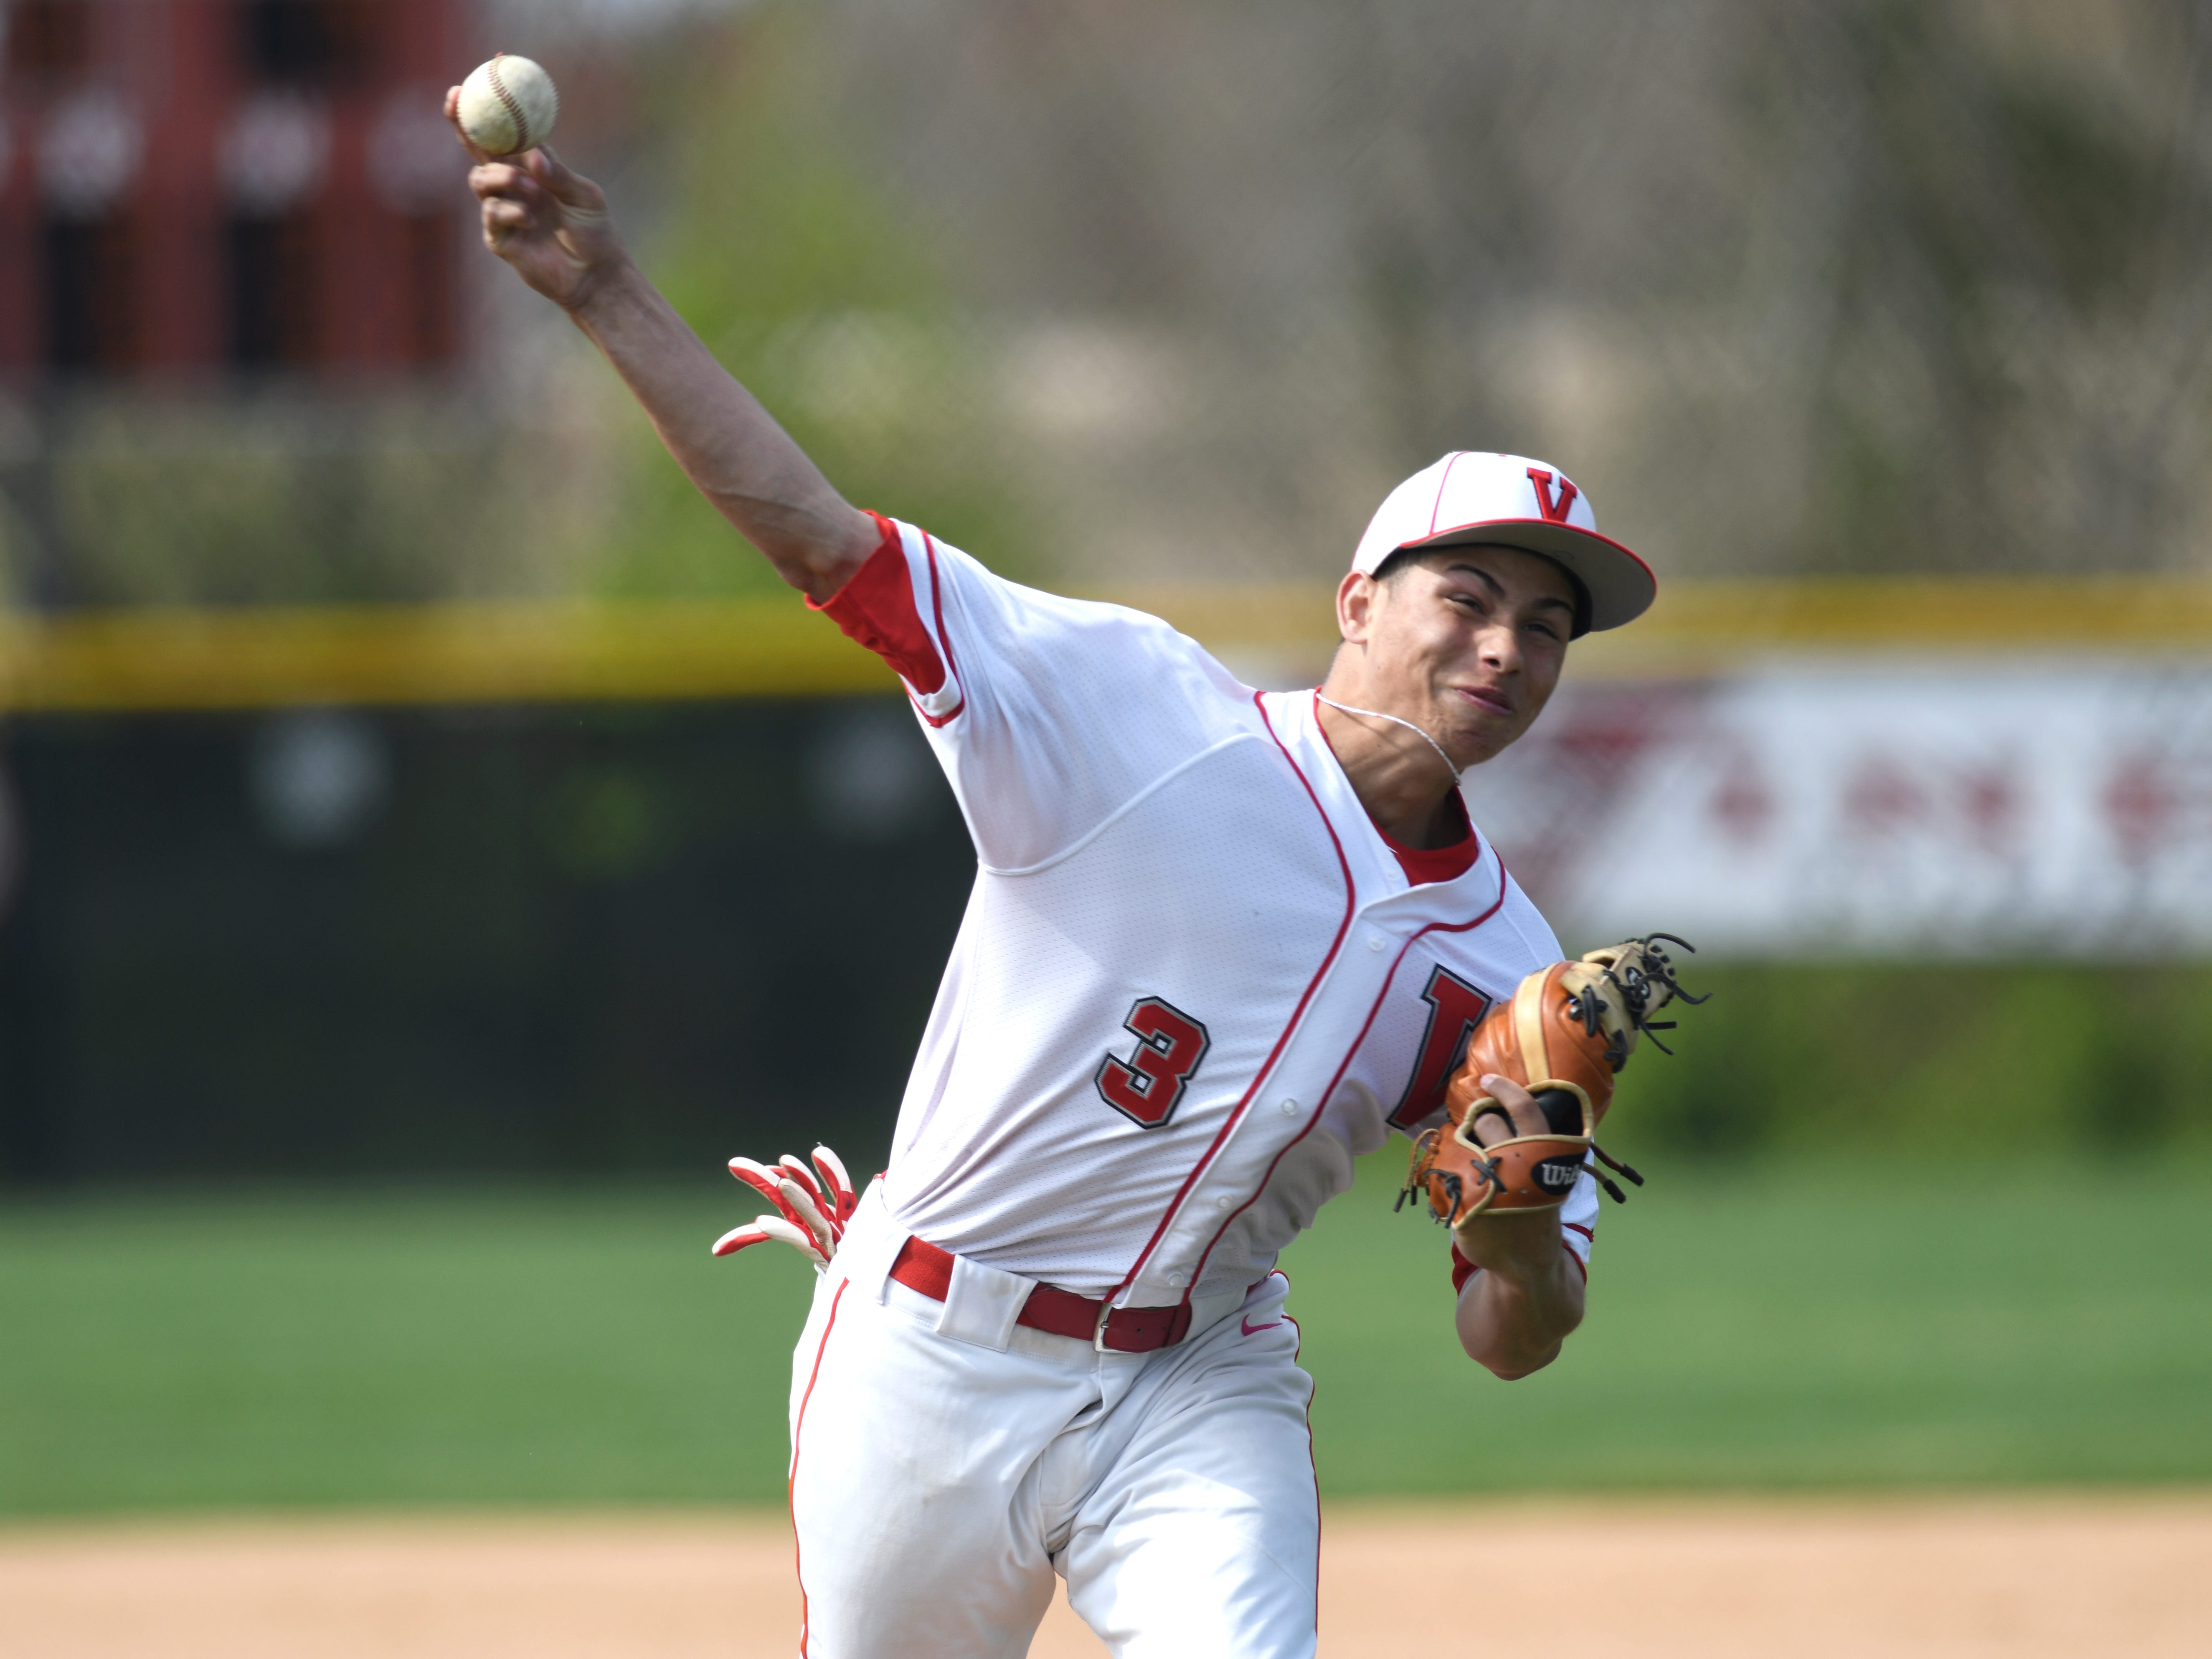 Vineland's Andrew Rodriguez warms up on the mound before Wednesday's matchup against Atlantic City. The Fighting Clan topped the visiting Vikings, 12-2.